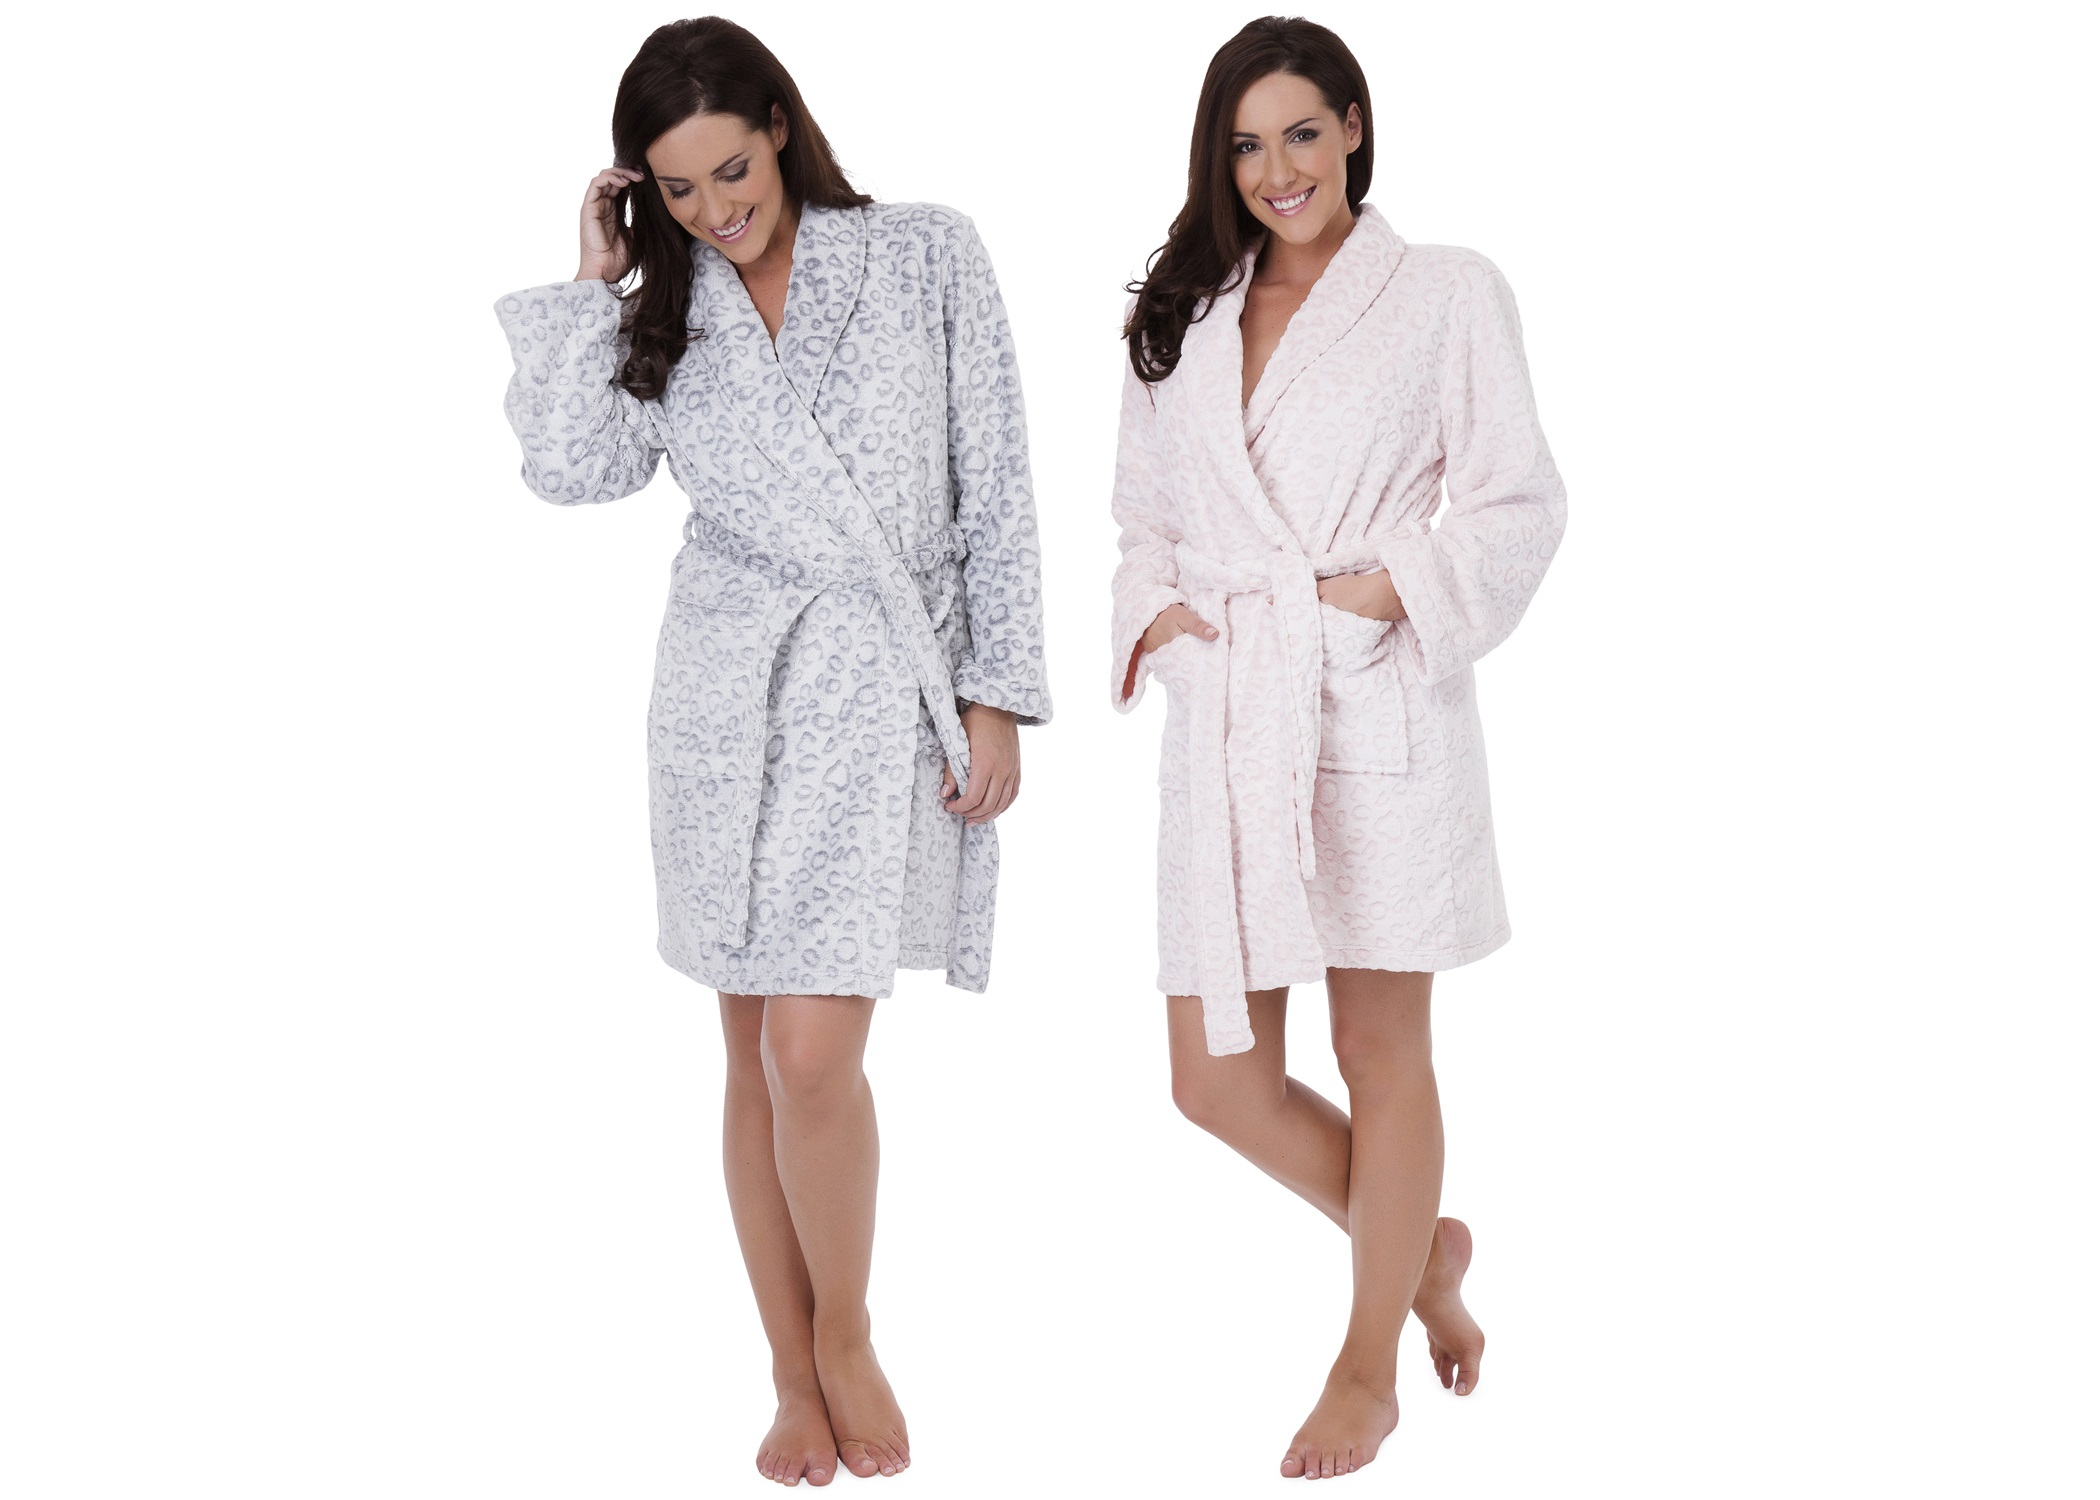 Womens Luxury Leopard Nightwear Range Robe Dressing Gown Pyjamas Pjs ... 449ba27cd